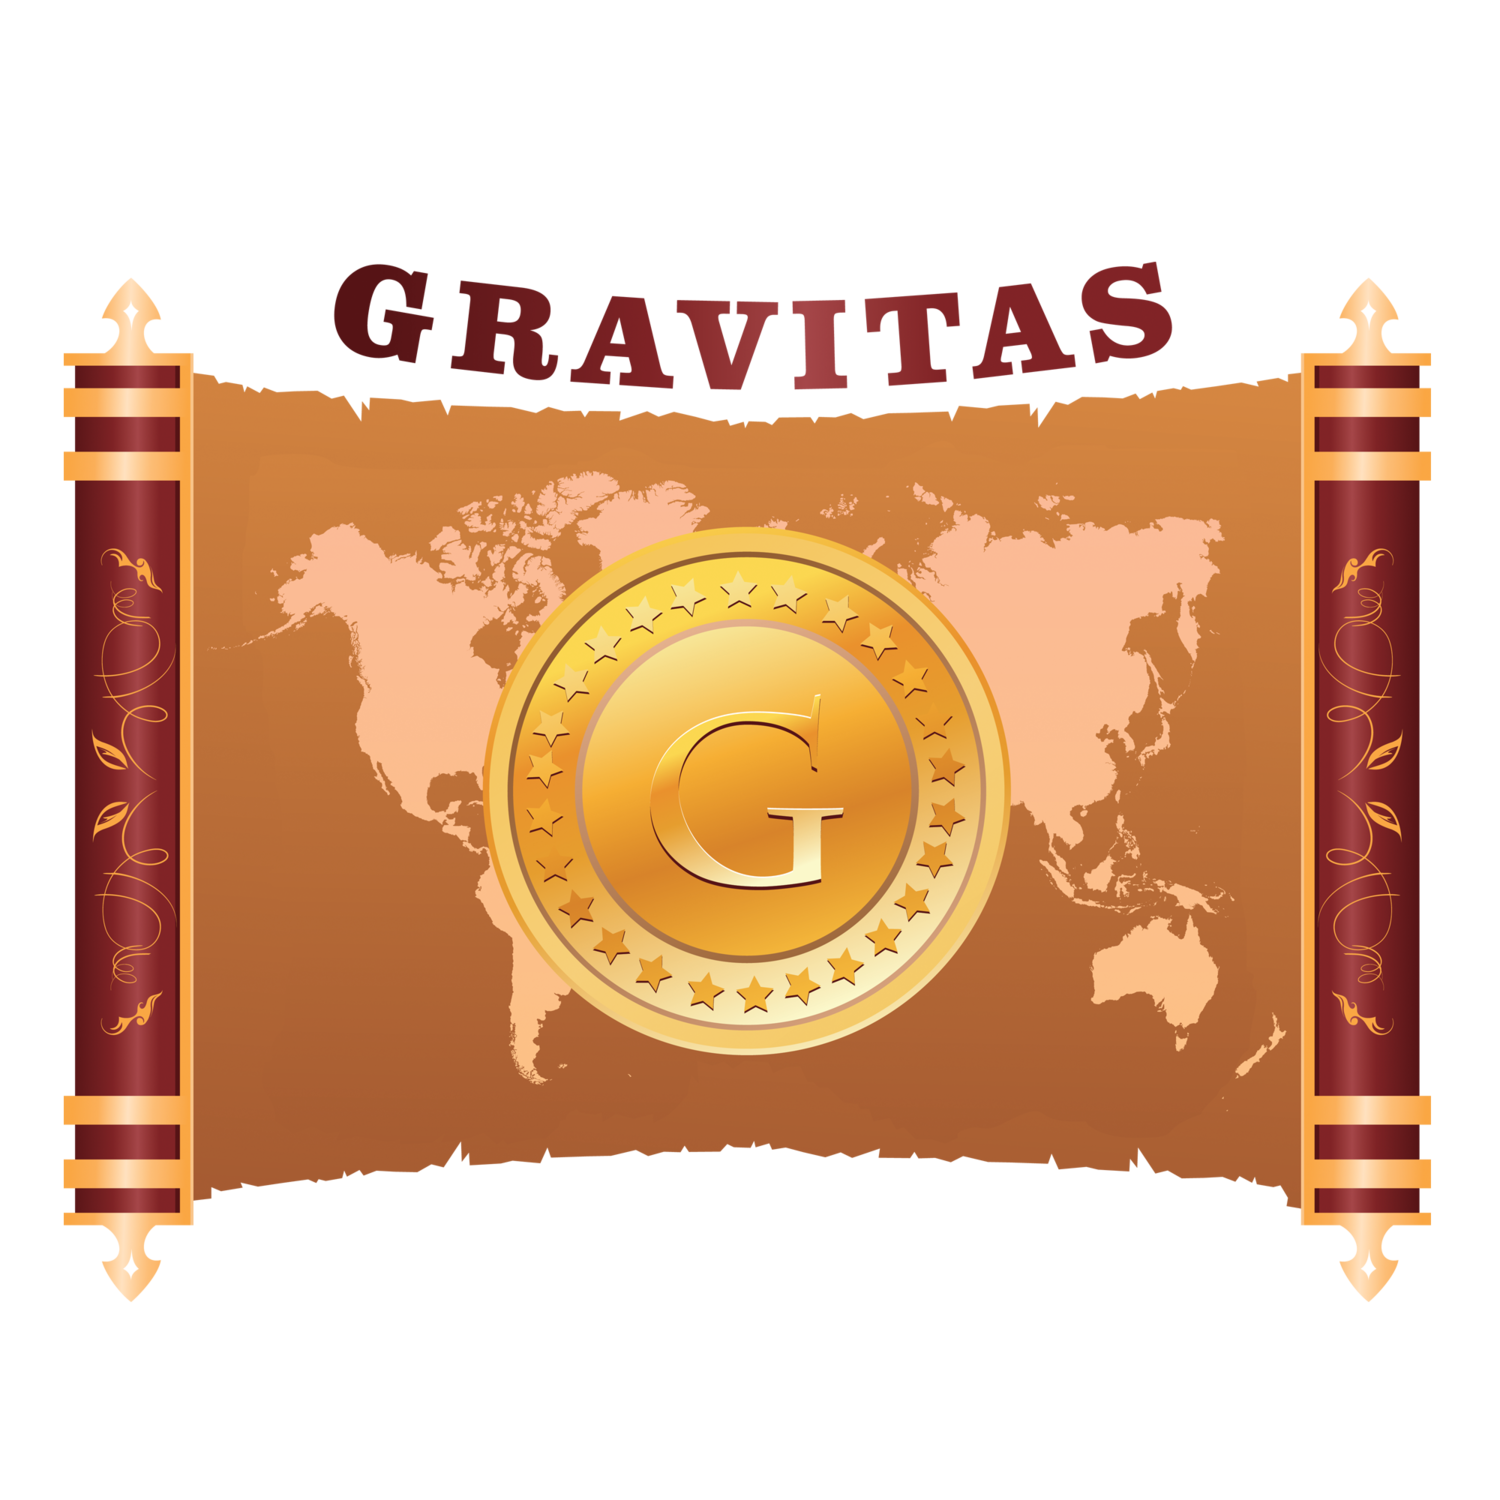 The Gravitas Manuscript: The World's Key to Wealth, Power and Influence